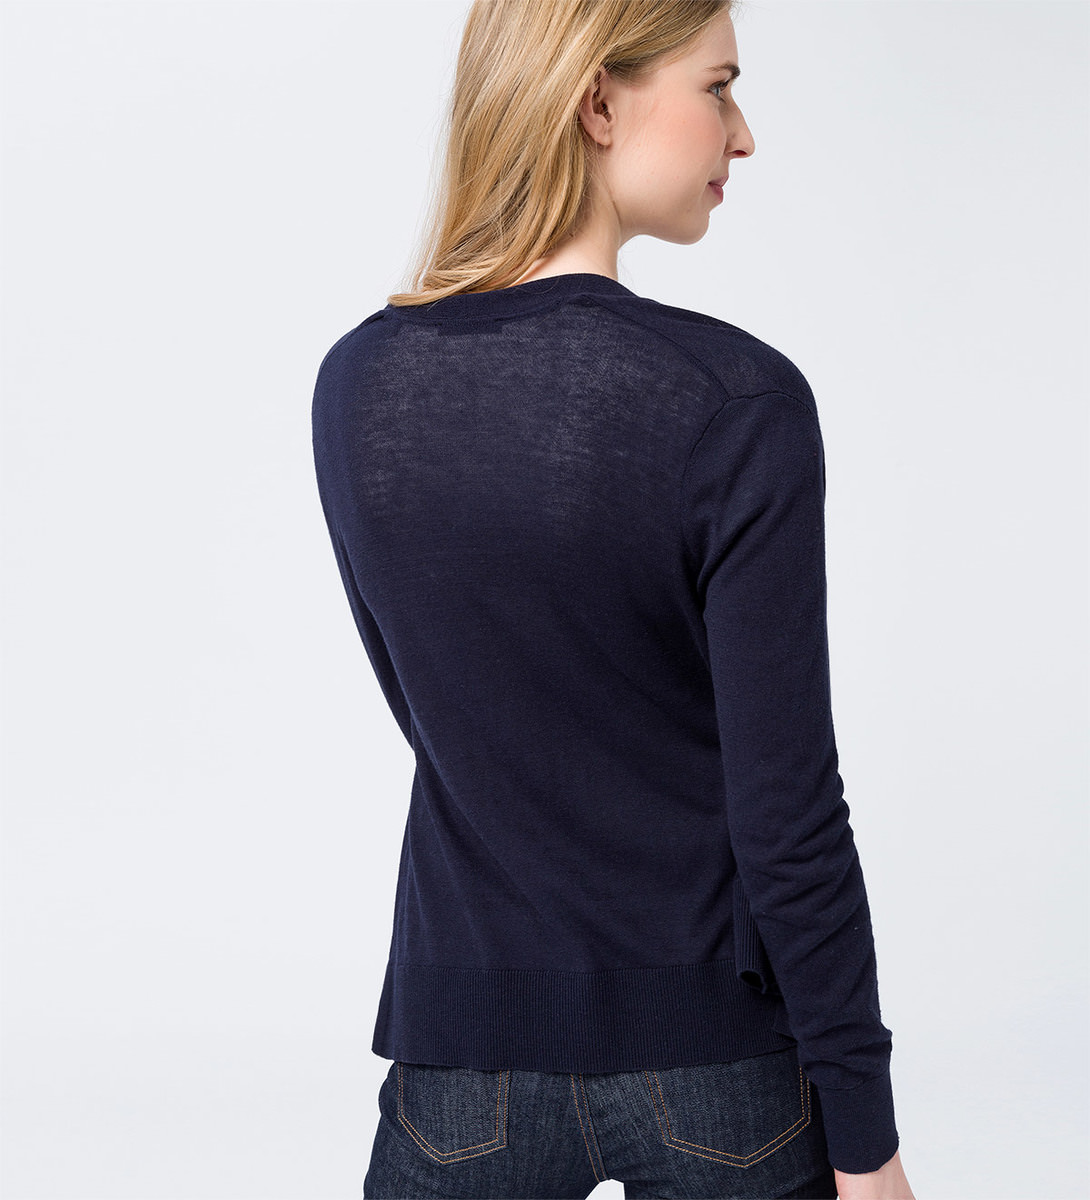 Cardigan in knopflosem Design in blue